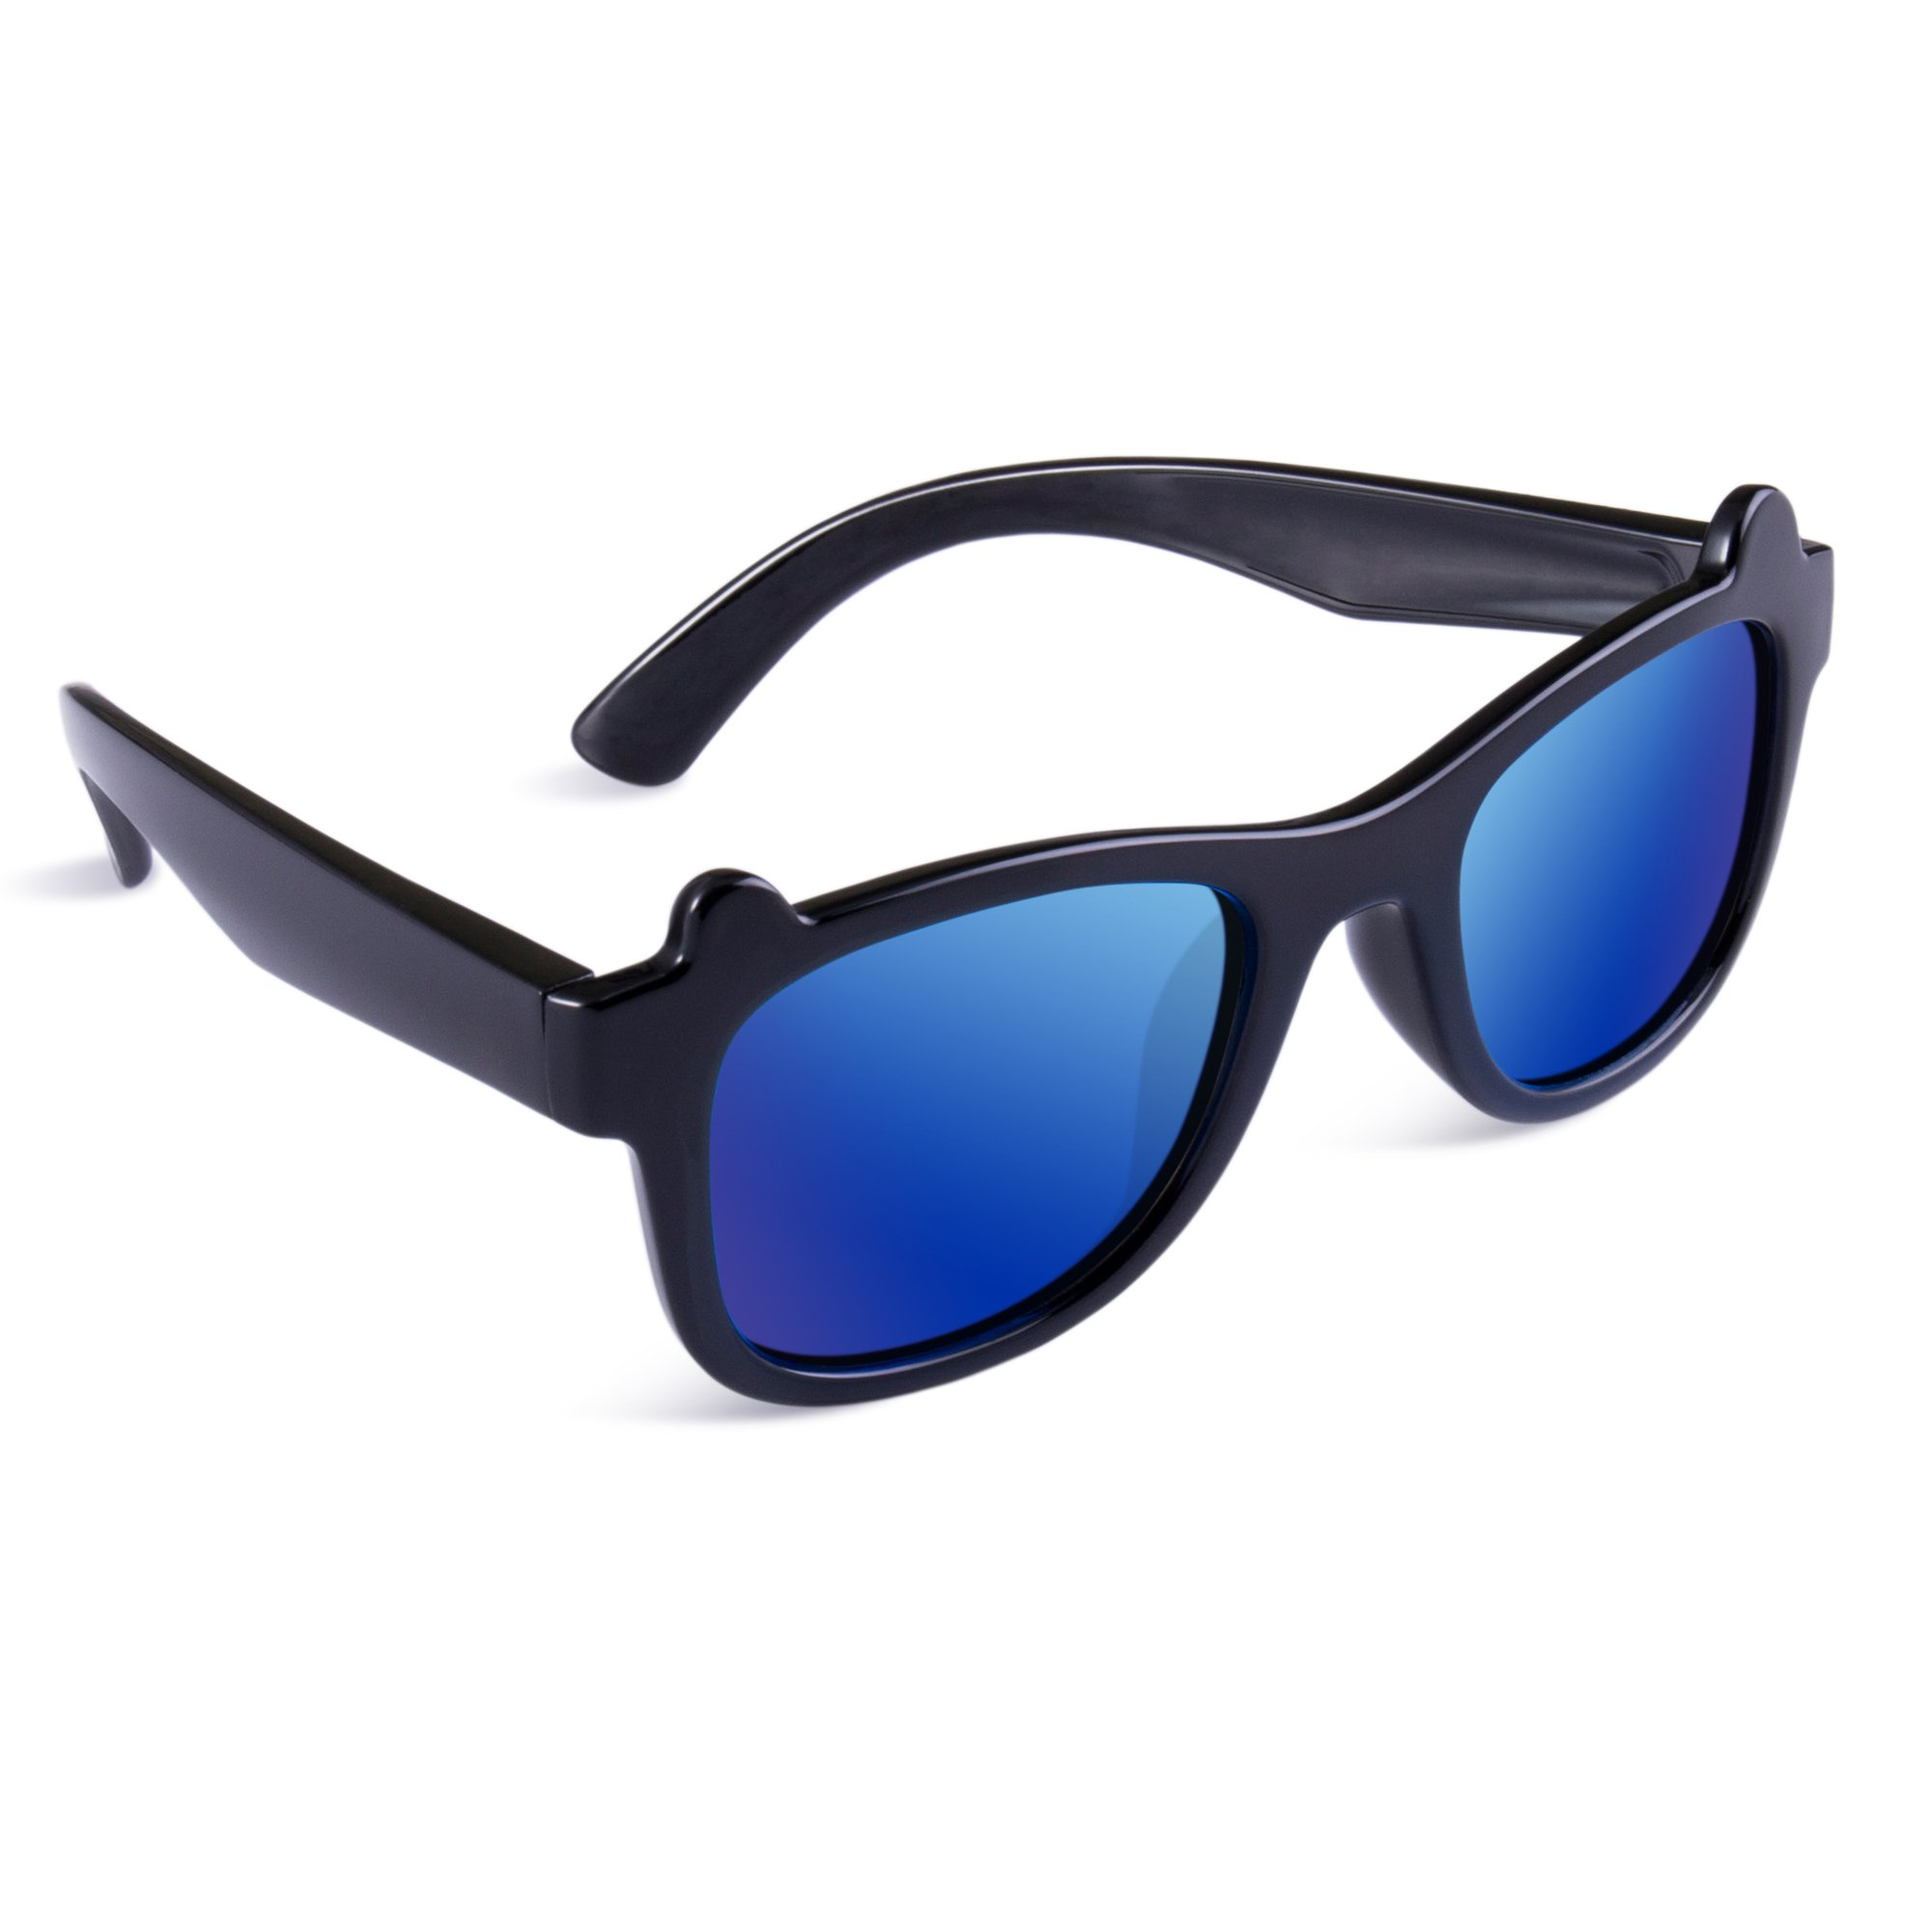 a7cfa4cb494 Get Quotations · SEEKWAY Polarized Kids Sunglasses For Boys Girls Child  Rubber Flexible frame Age 3+ SRK8132